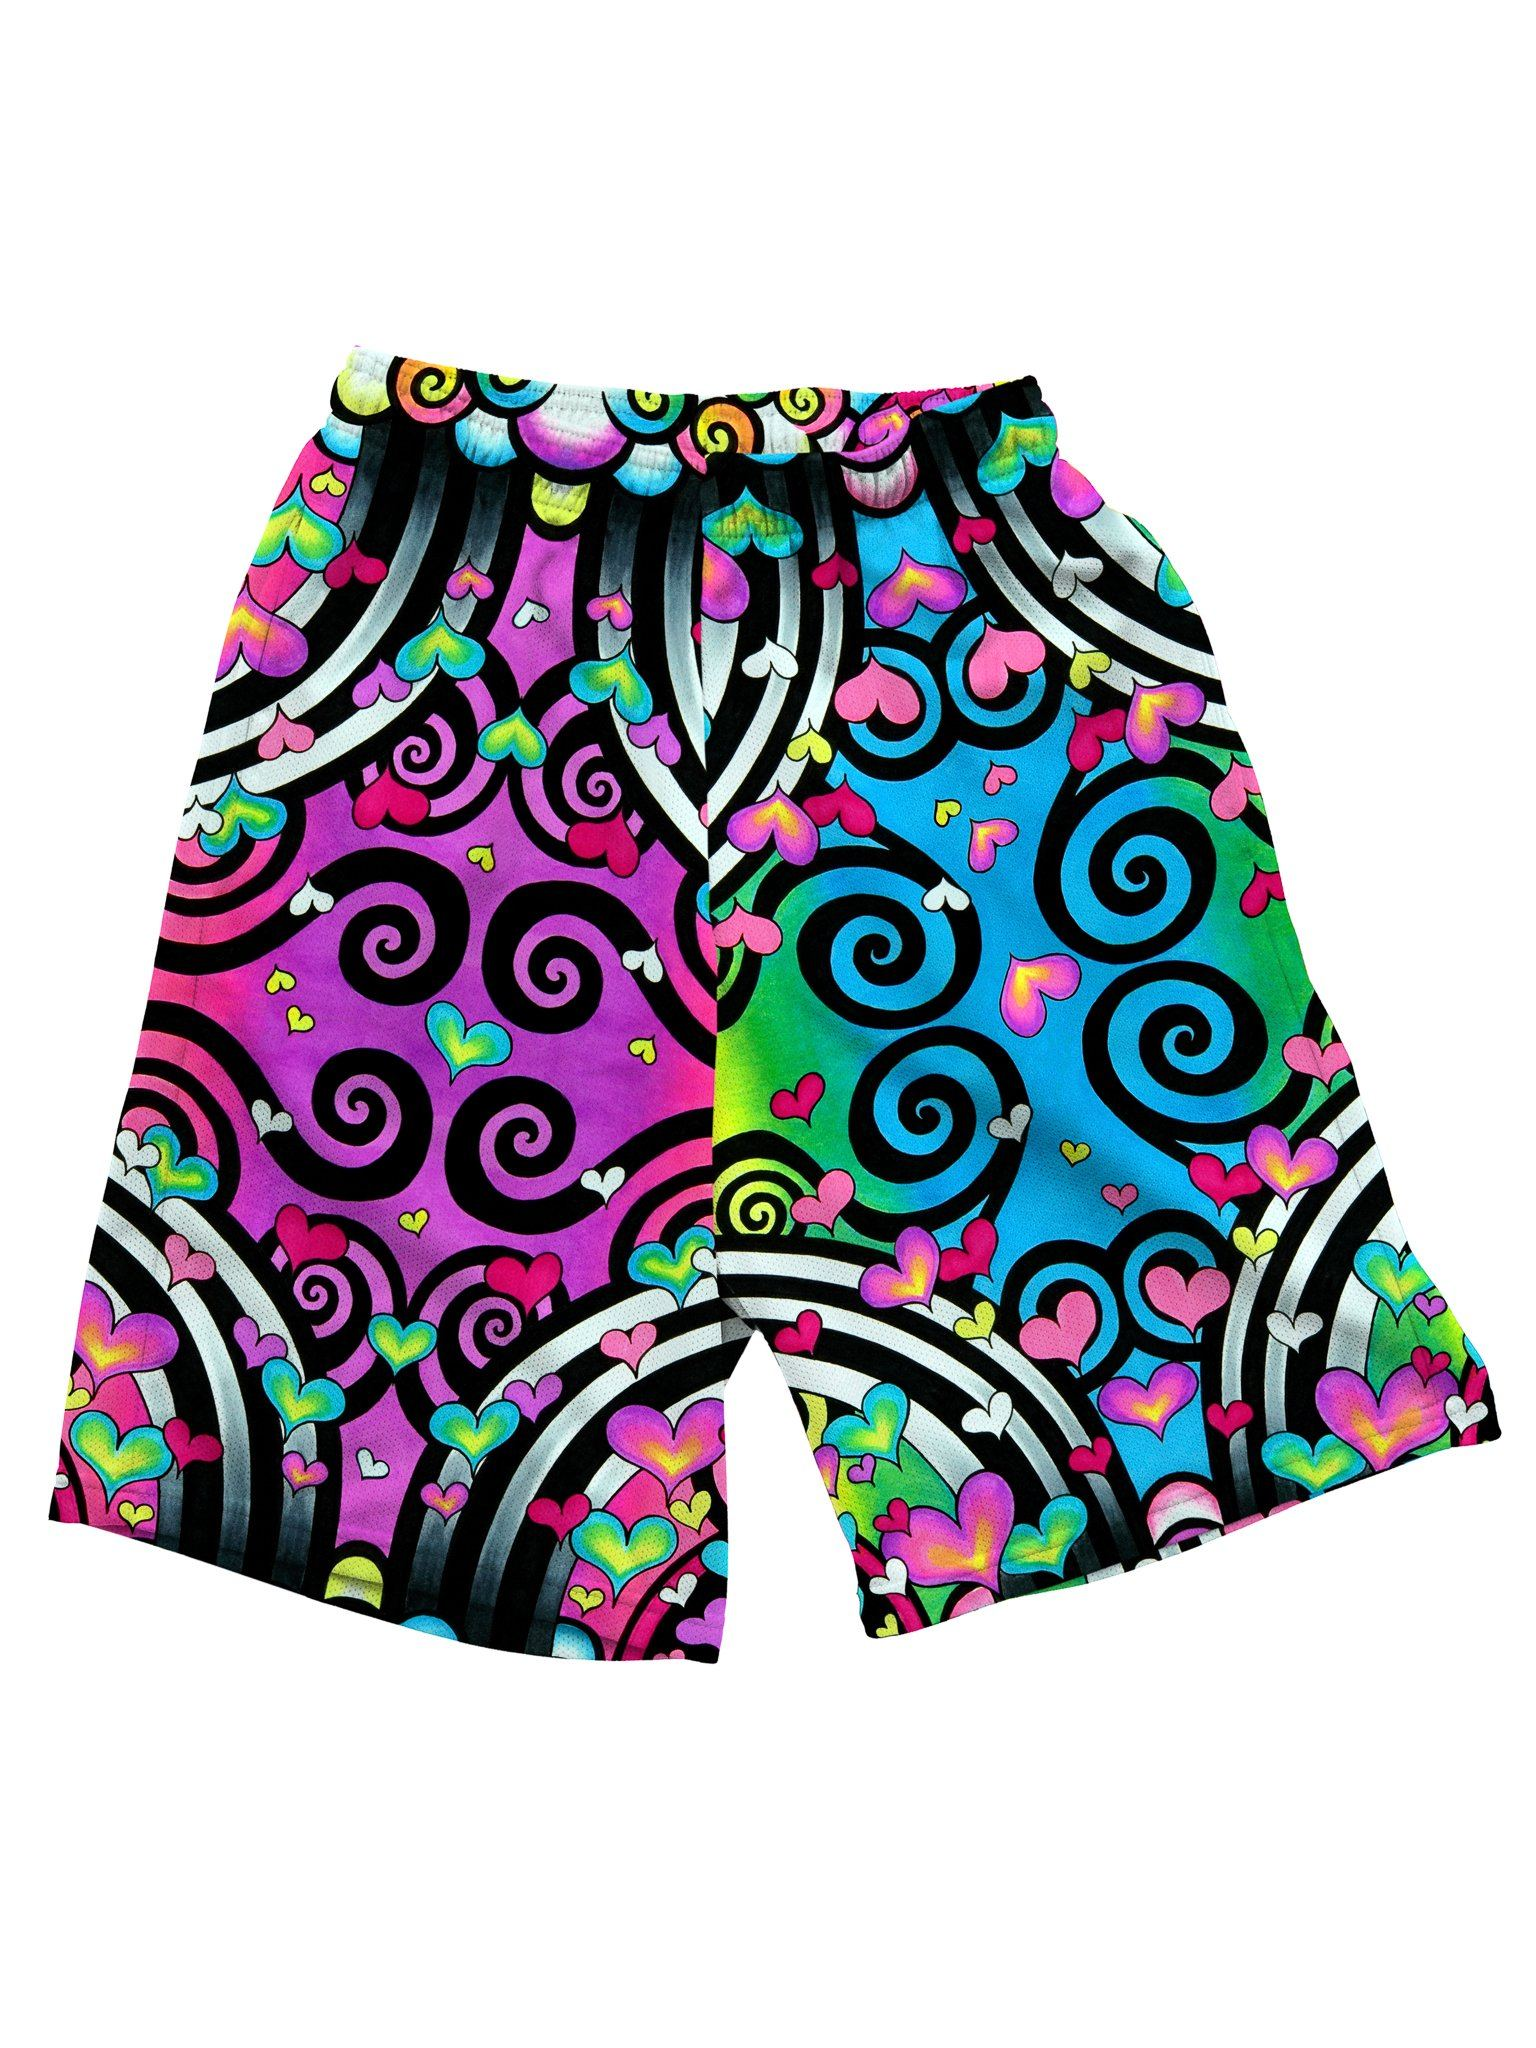 Brizmosphere Shorts Mens Shorts Electro Threads